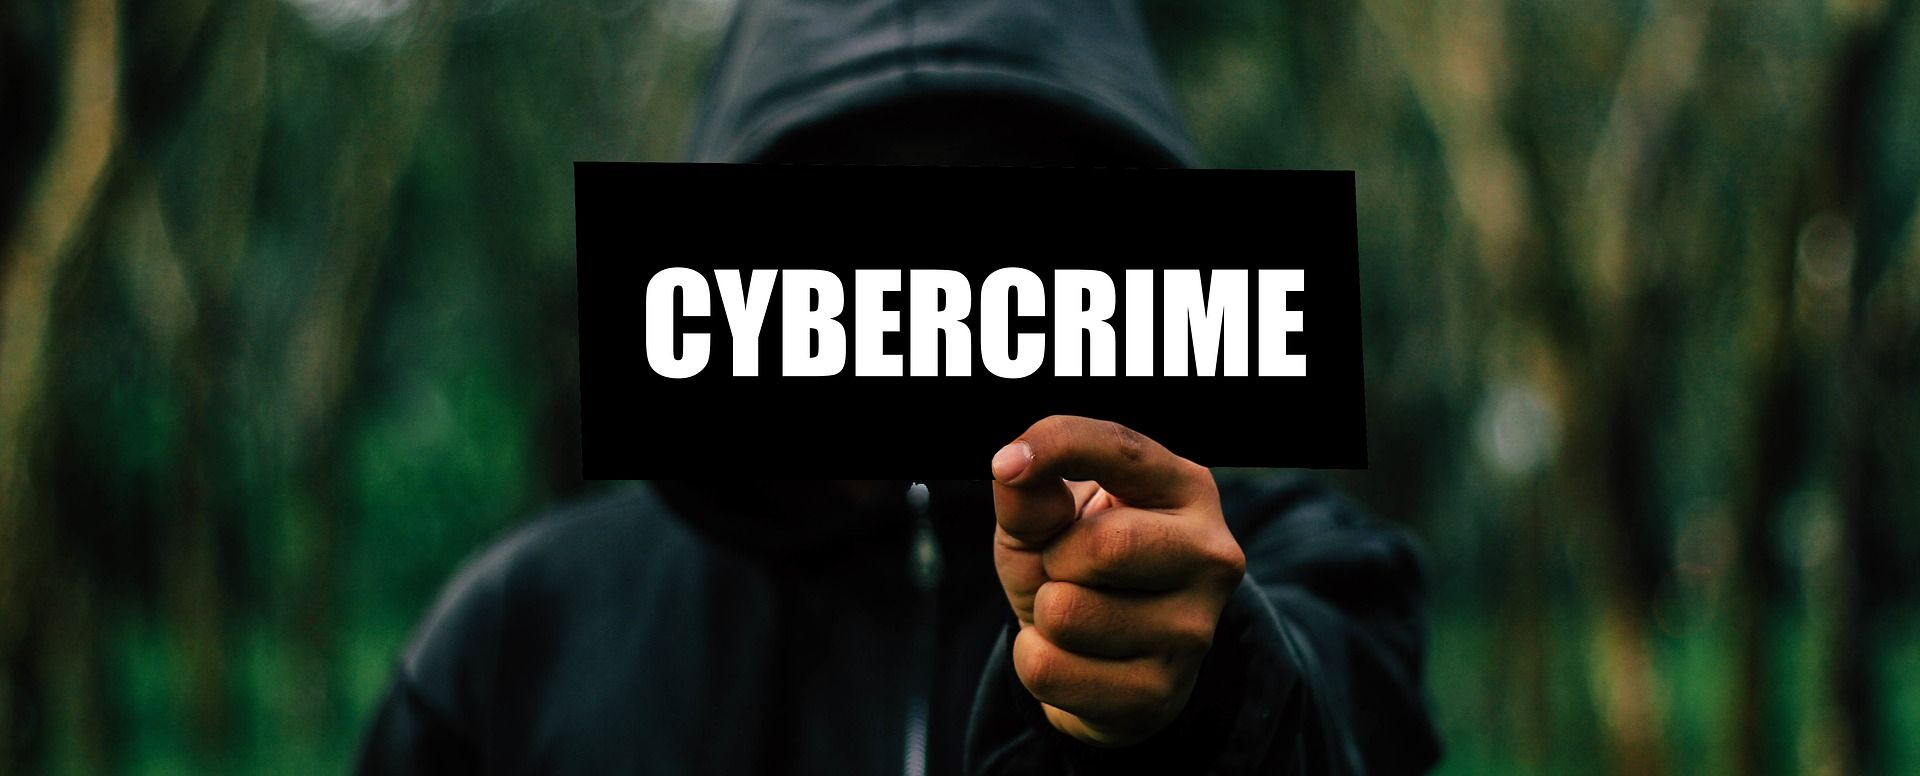 How To Protect Yourself From Cyber Crime Cyber Attack What Is Cybercrime Computer Science Degree